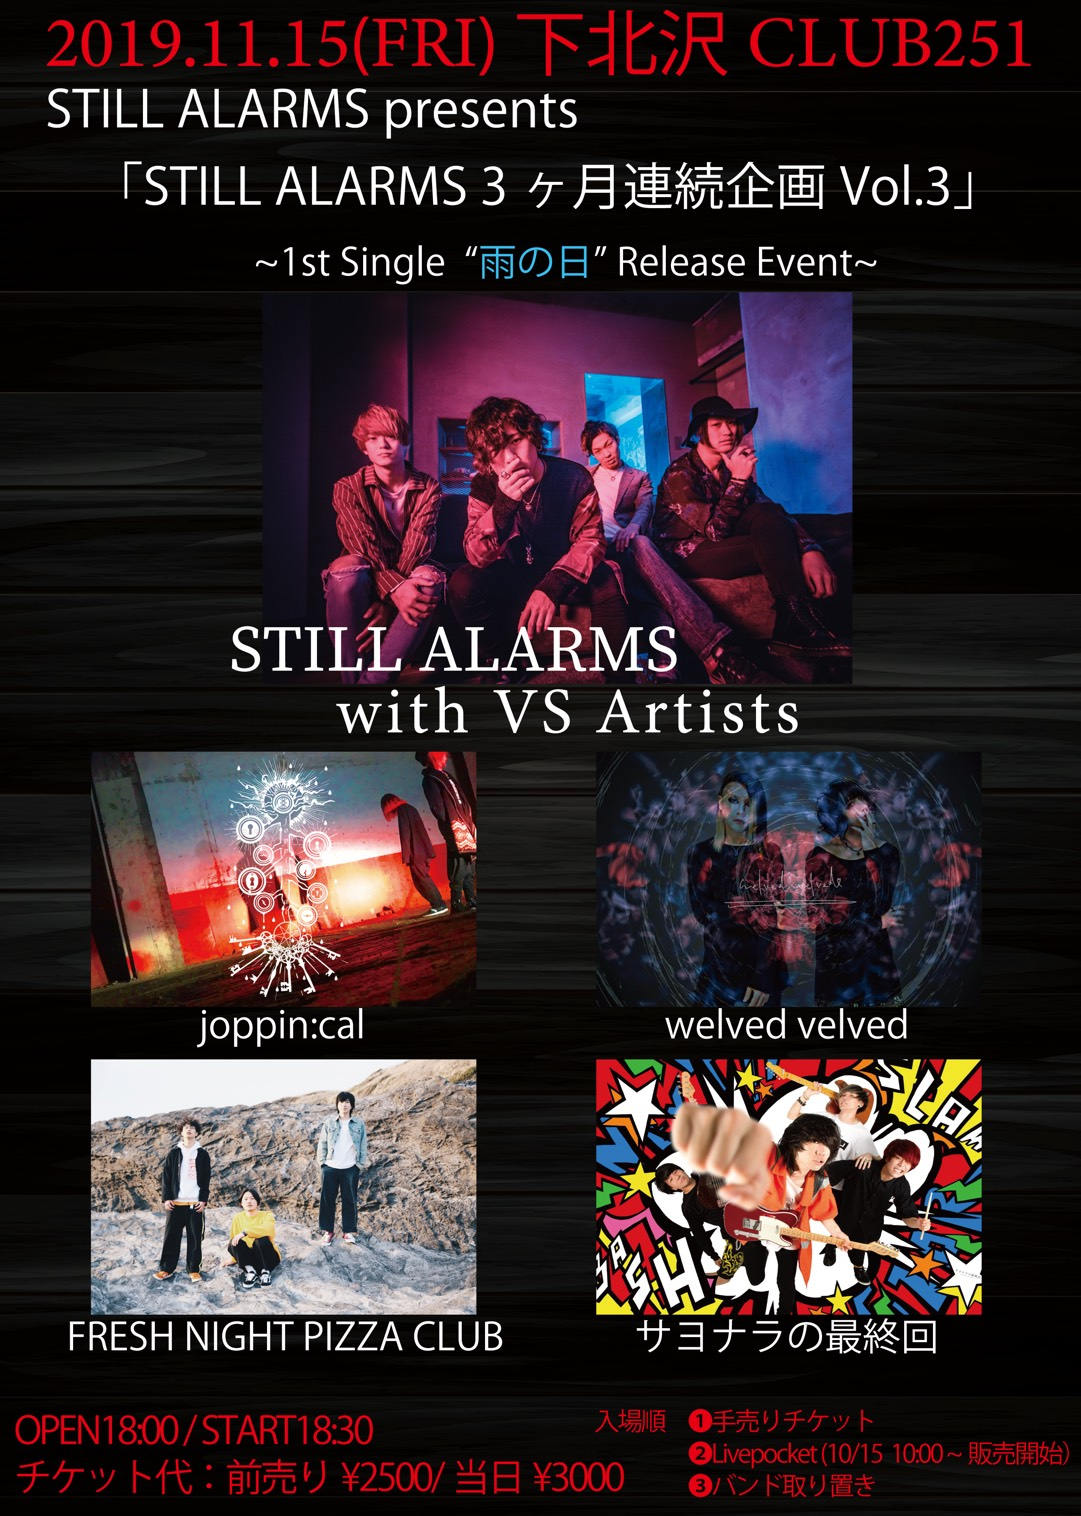 "STILL ALARMS presents STILL ALARMS 3ヶ月連続企画Vol.3 ~STILL ALARMS 1st Single ""雨の日"" Release Event~"